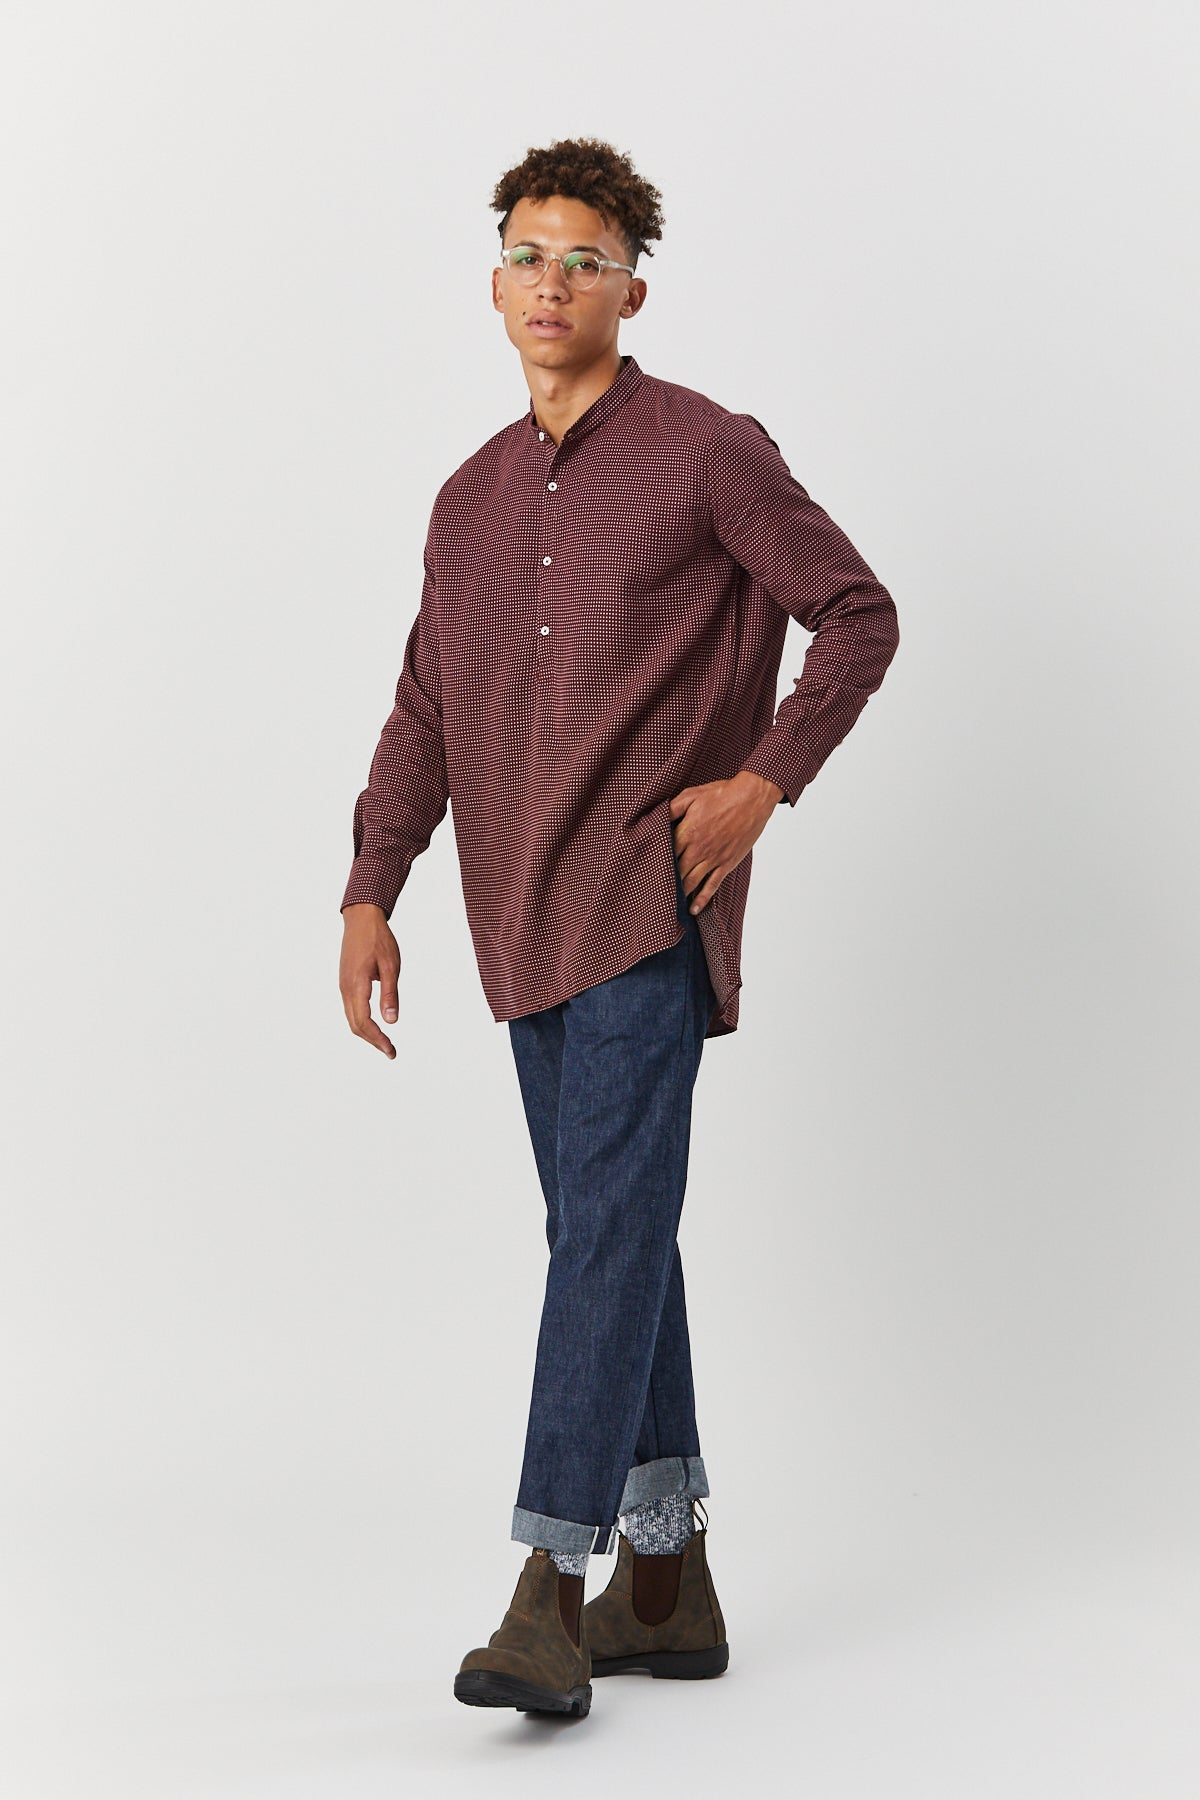 MARTIUS TUNIC IN MAROON CHECK - Fortune Goods